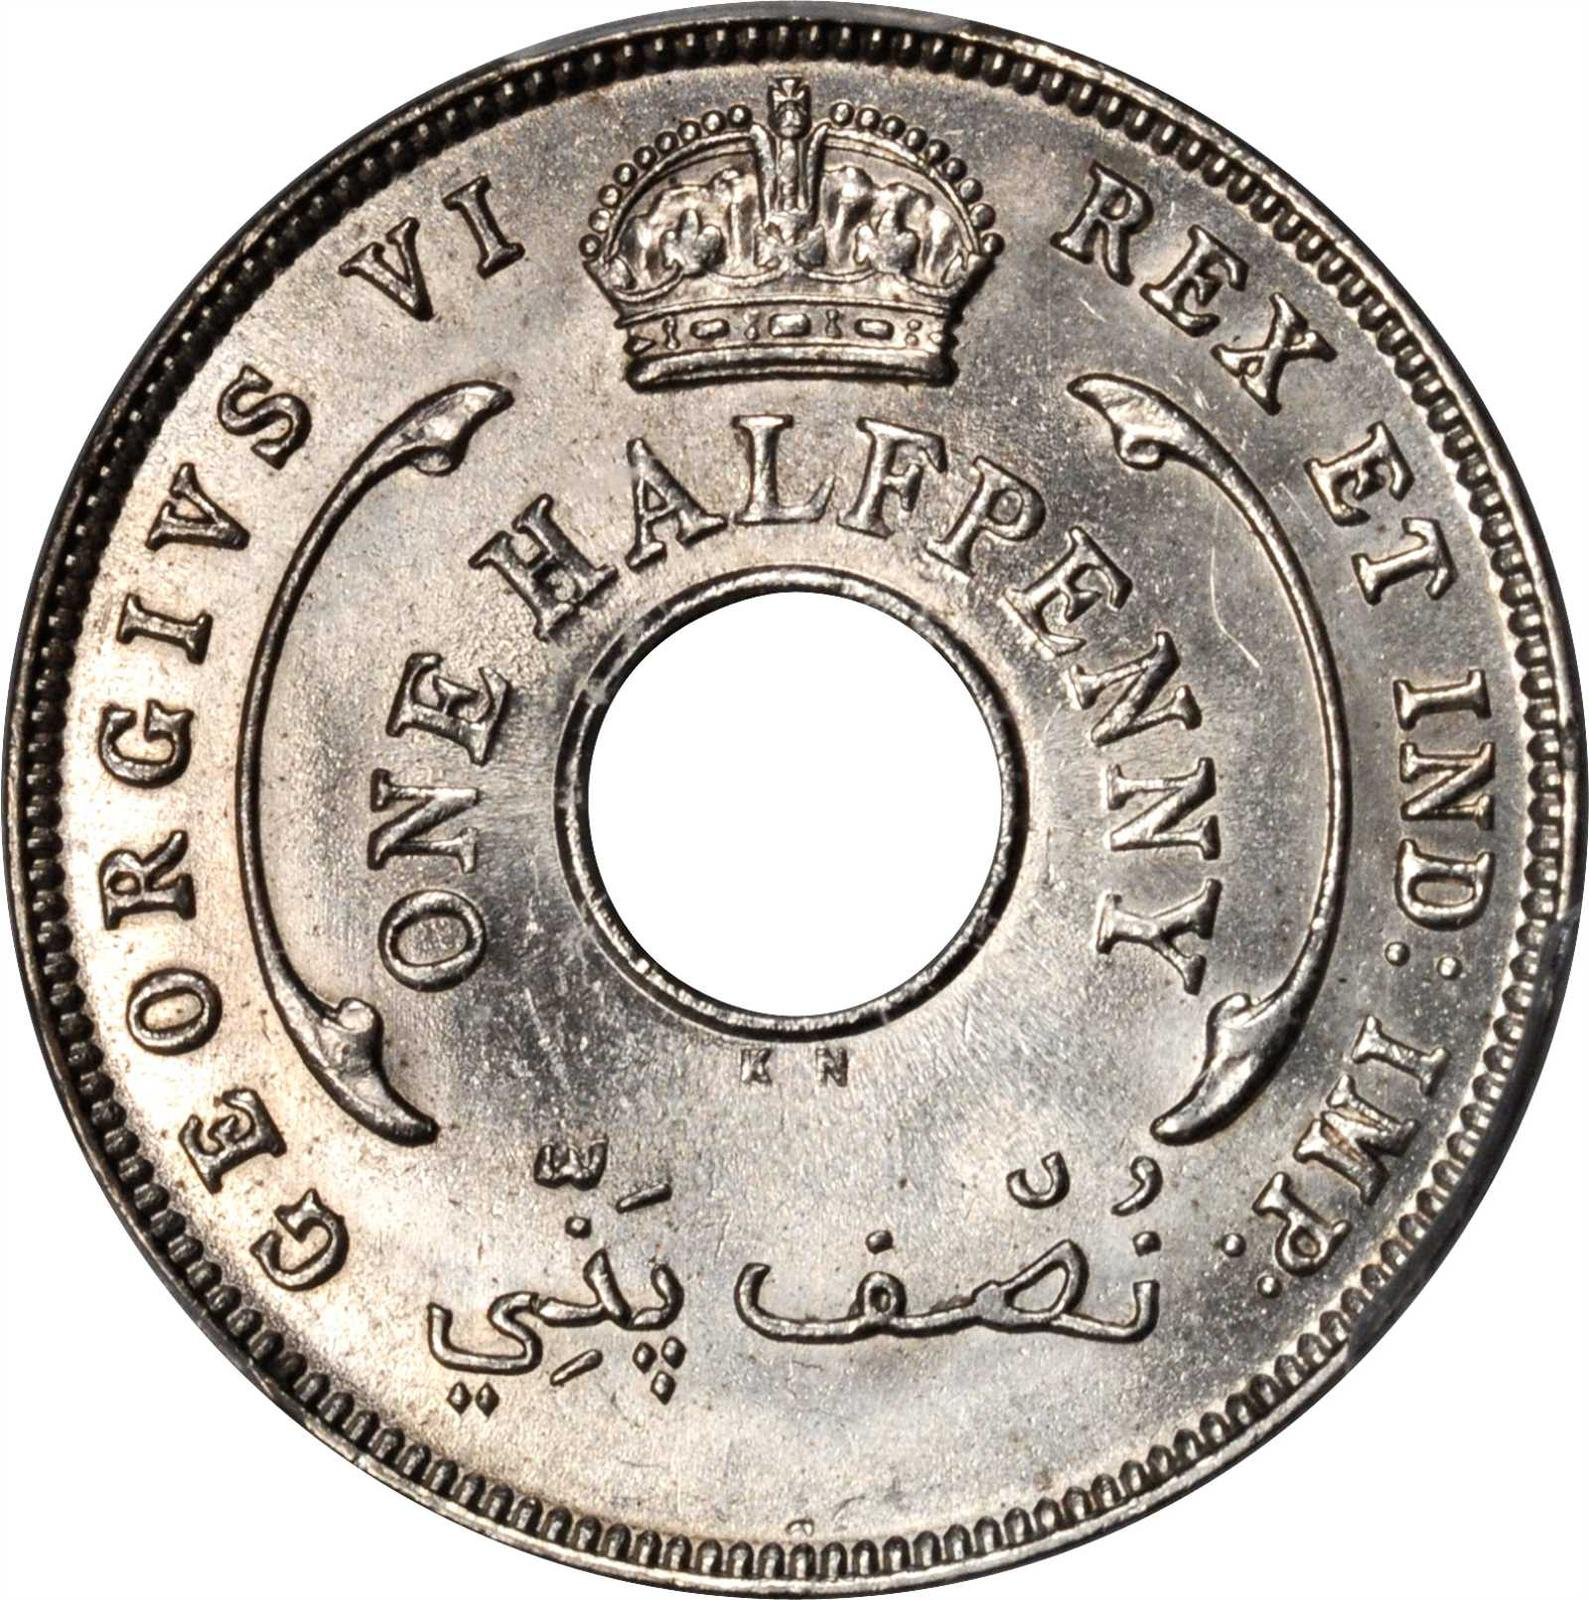 Halfpenny 1947, Coin from British West Africa - Online Coin Club